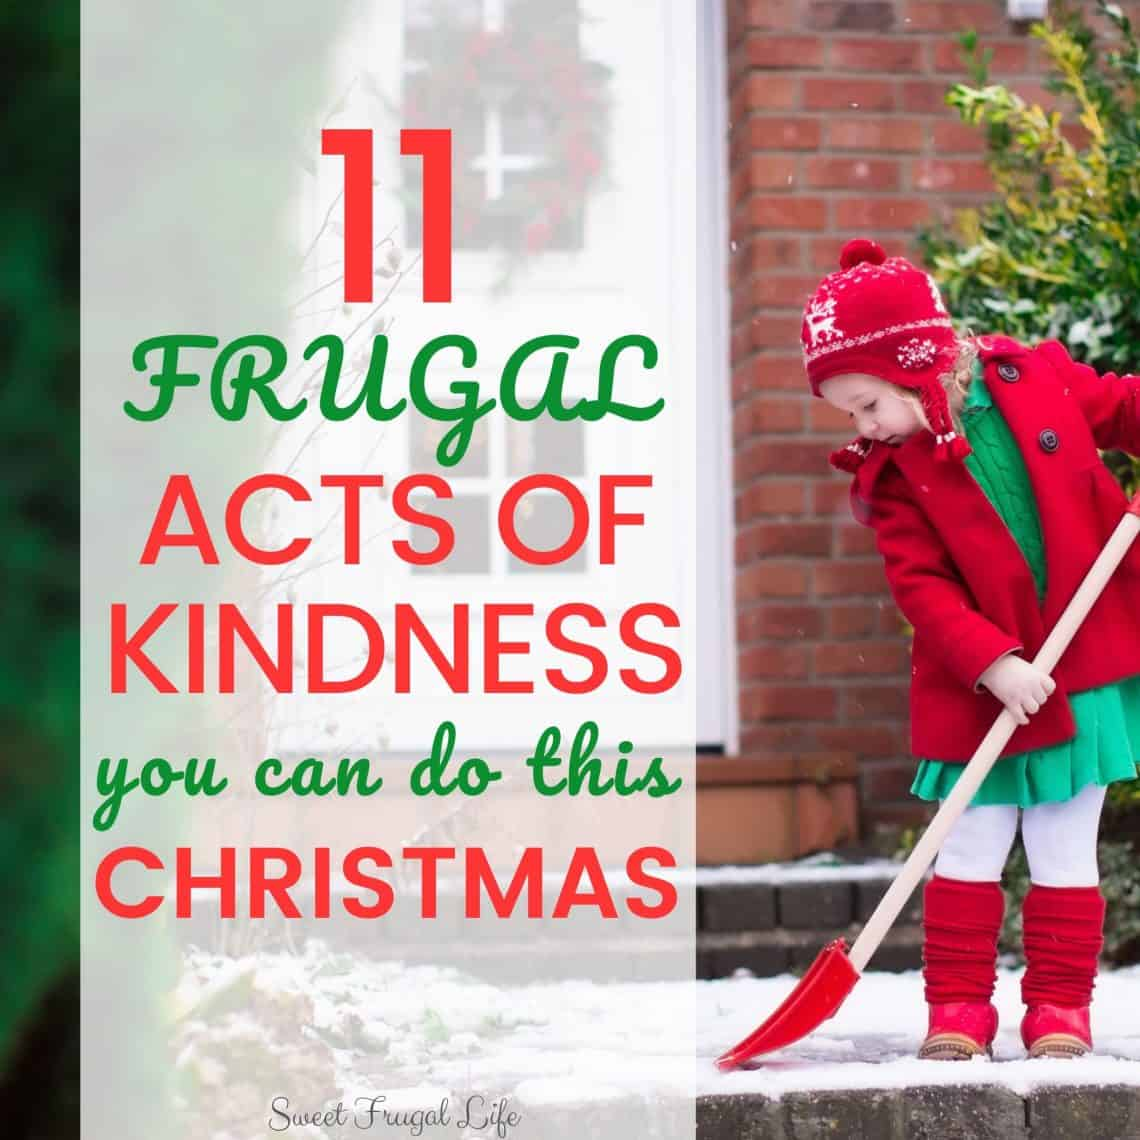 Frugal acts of kindness for christmas